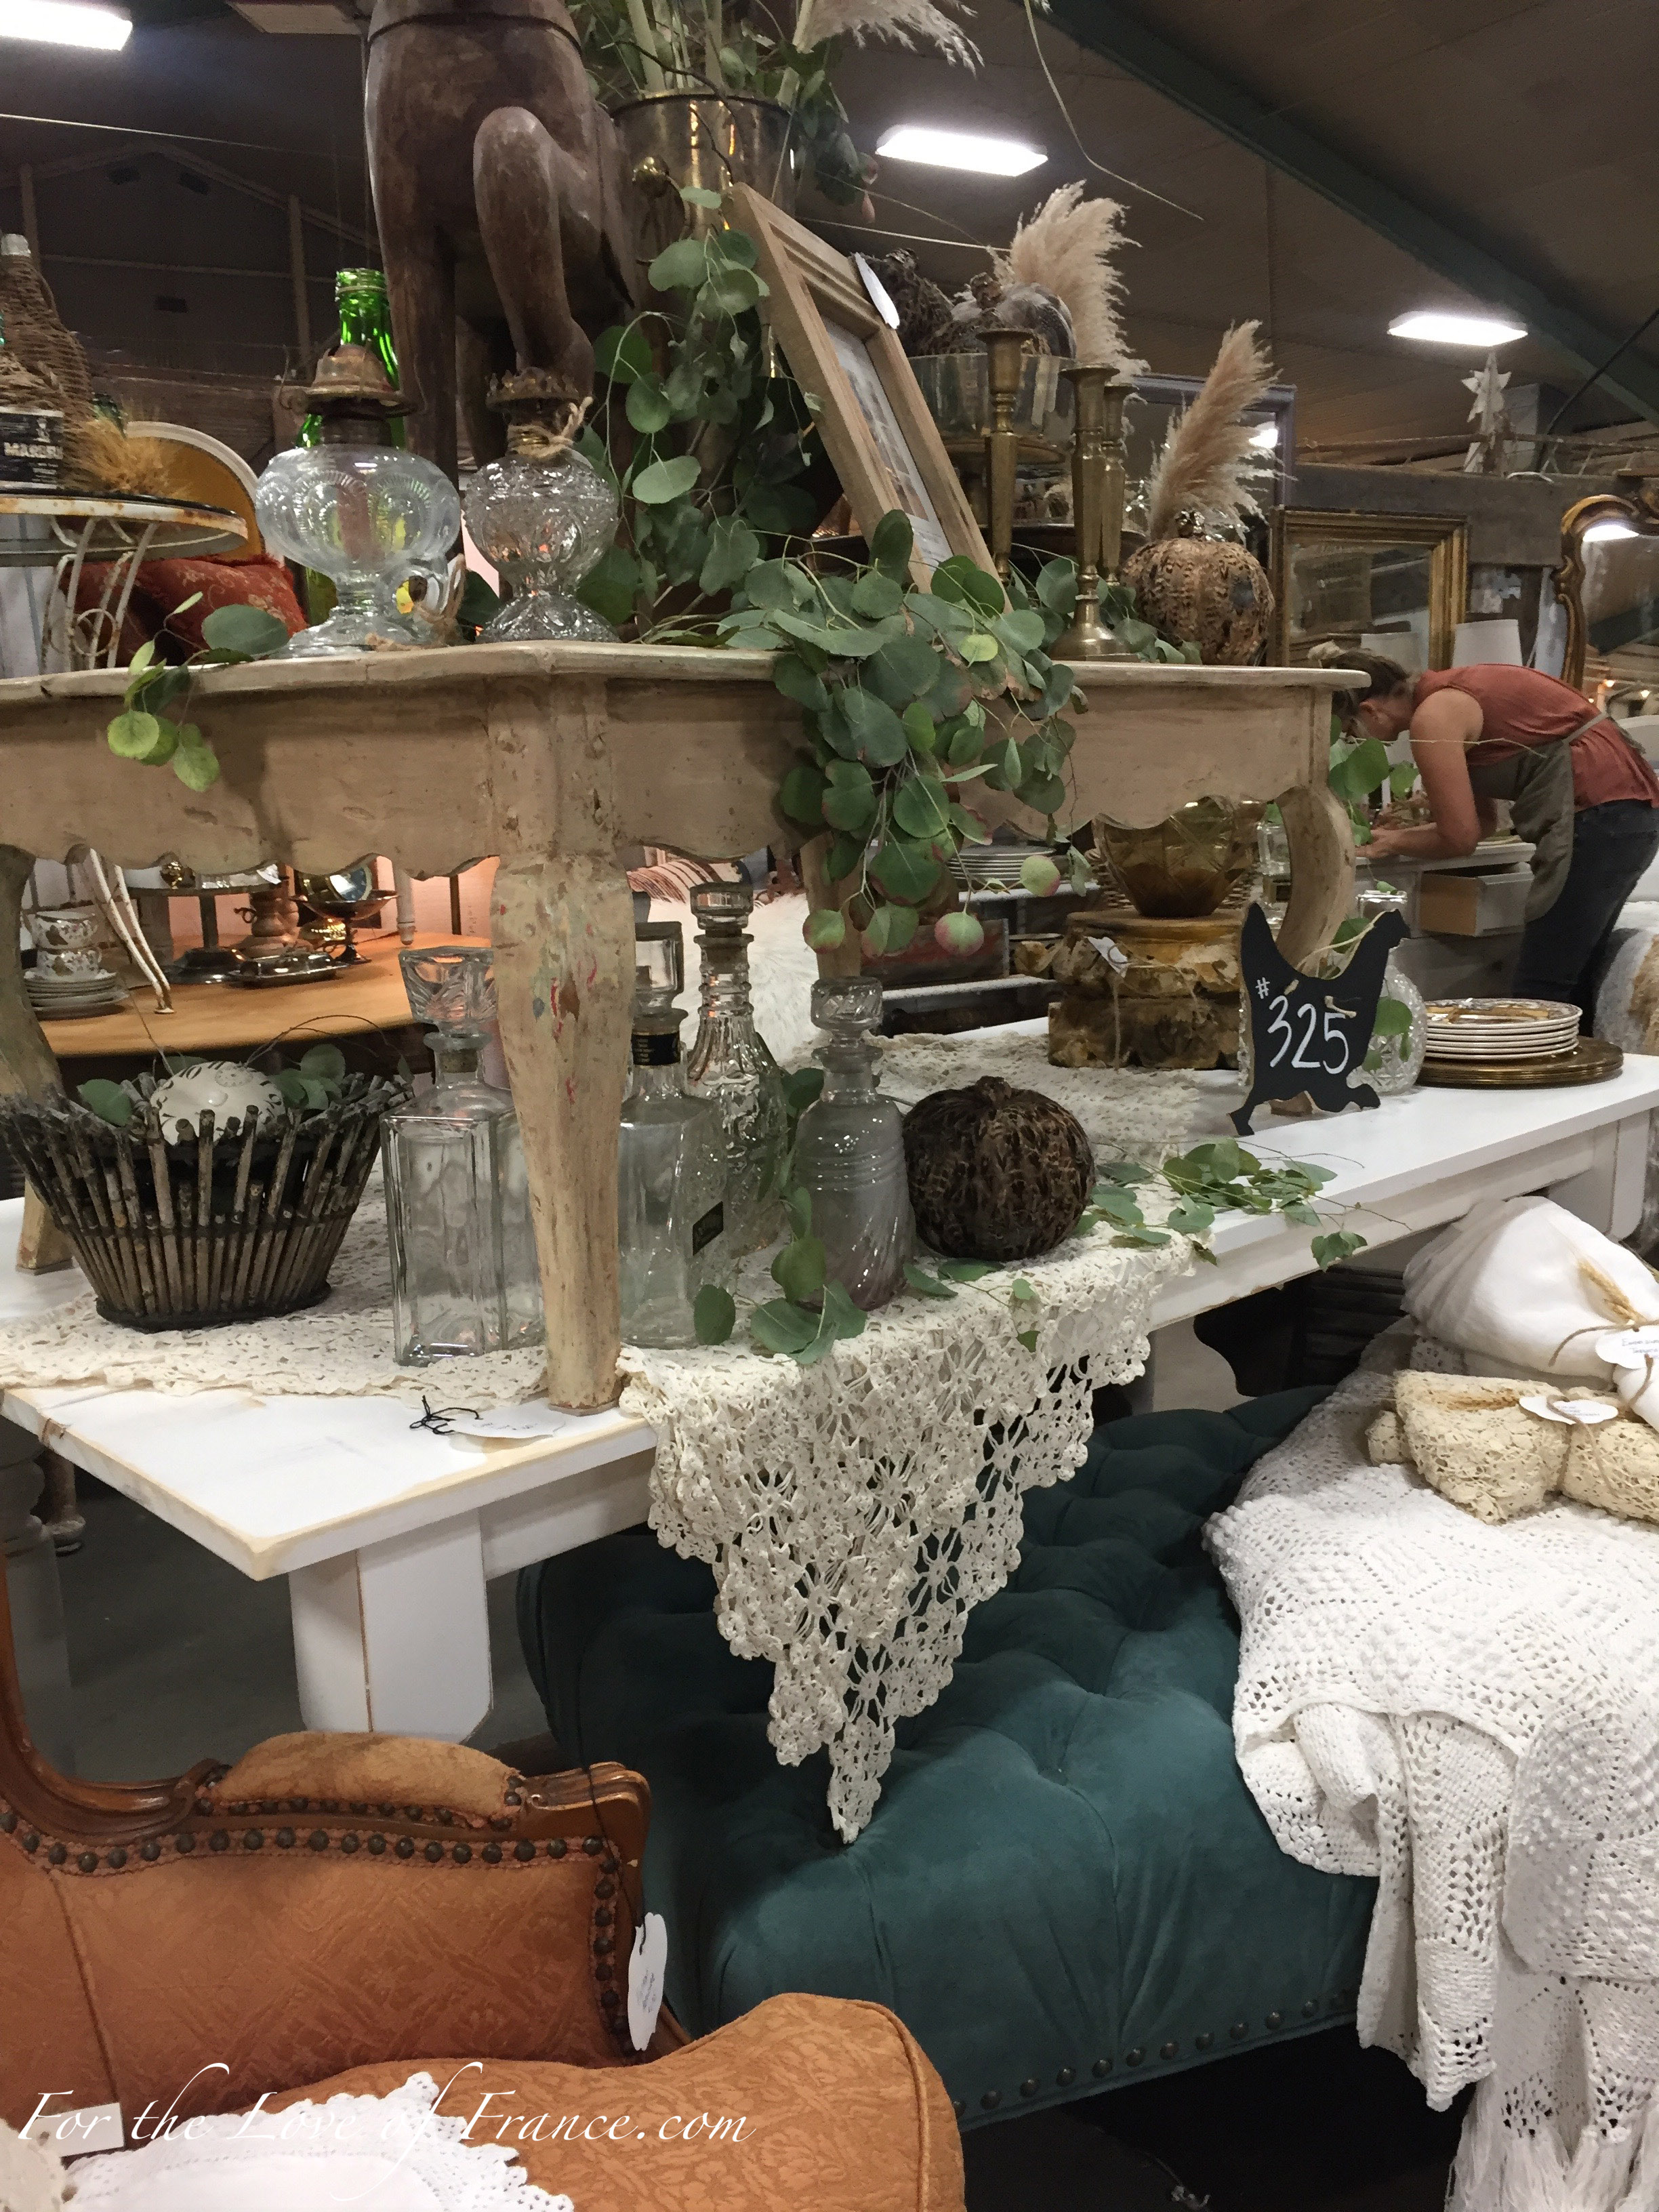 Vintage tables, picture frames, baskets, ottoman